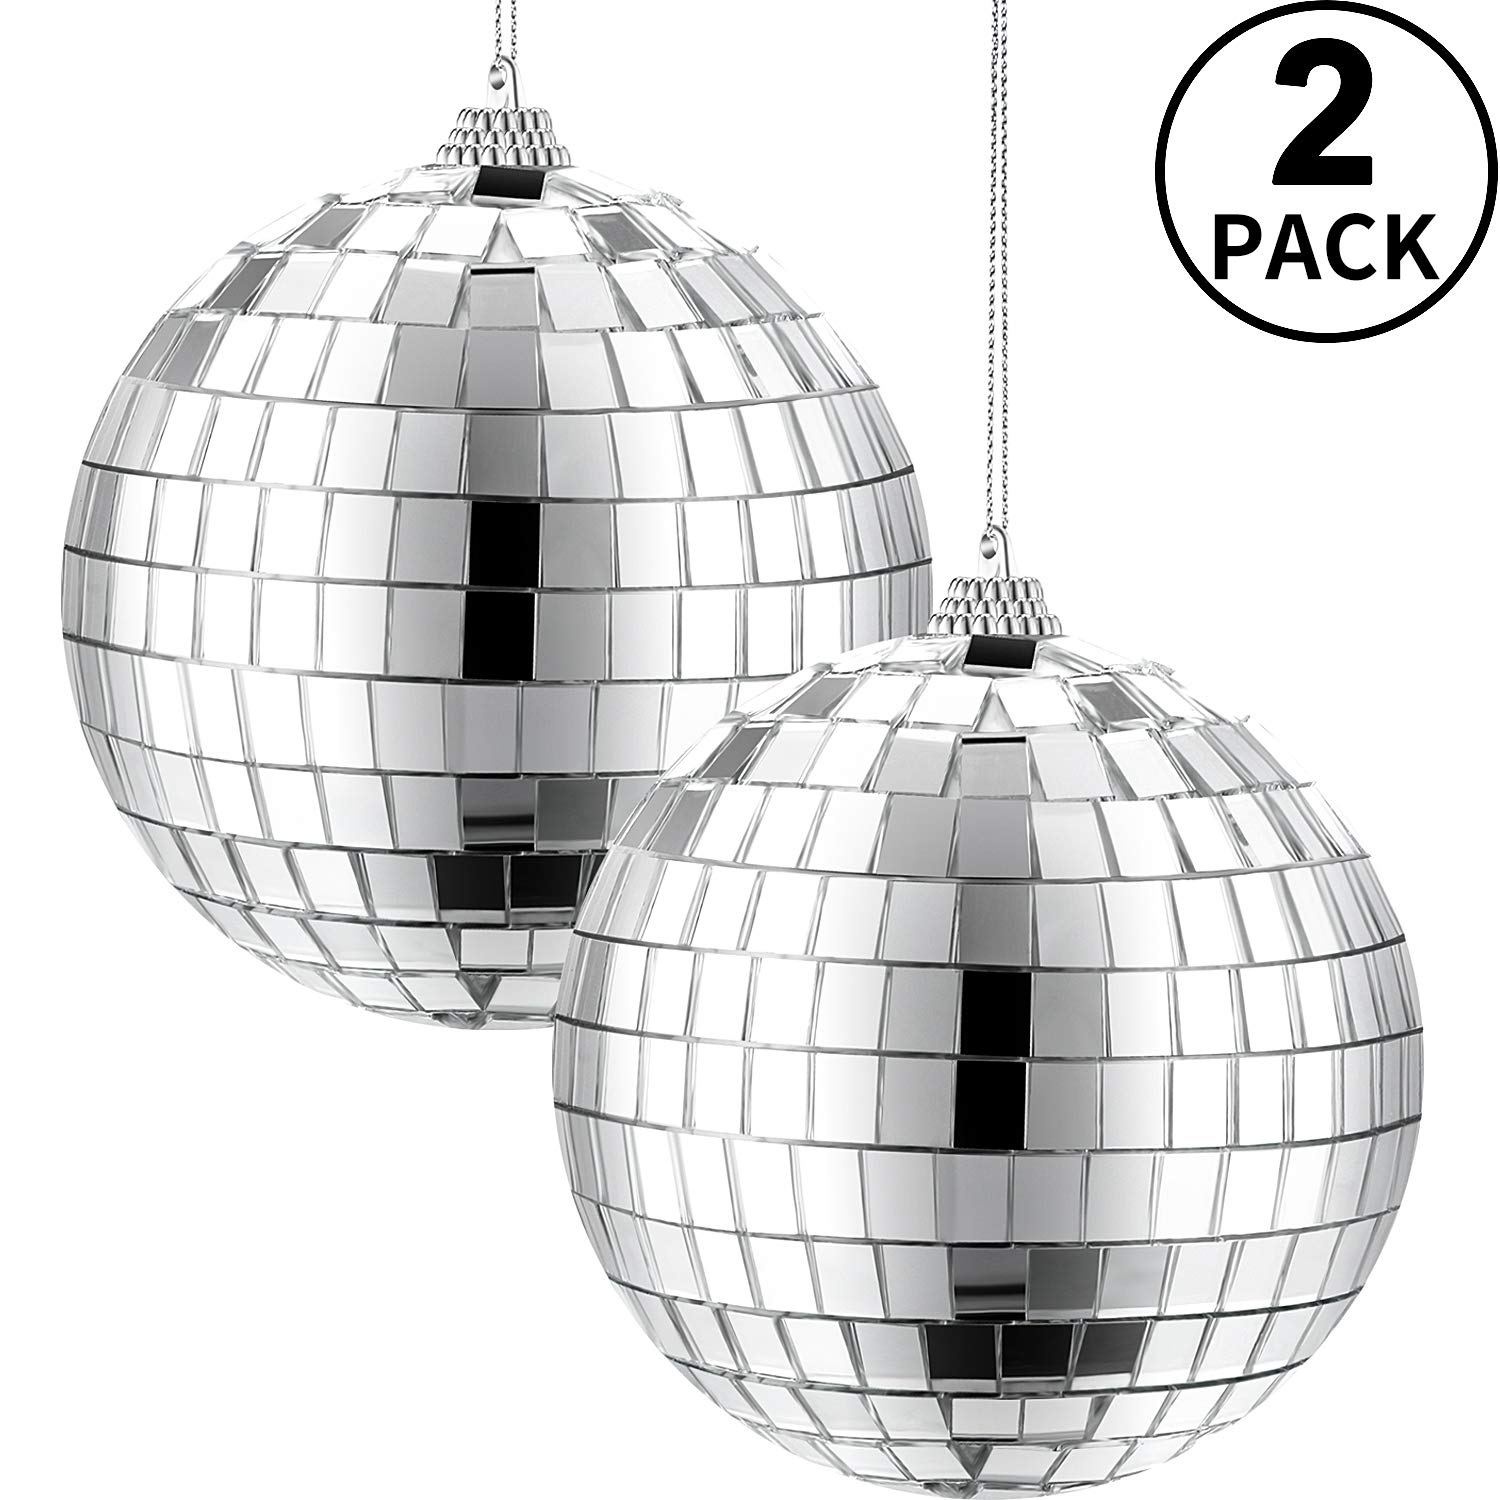 2 Packs 4 Inch Mirror Disco Ball, 70's Disco Party Decoration, Hanging Ball for Party or DJ Light Effect, Home Decorations, Stage Props, Game Accessories (Silver)